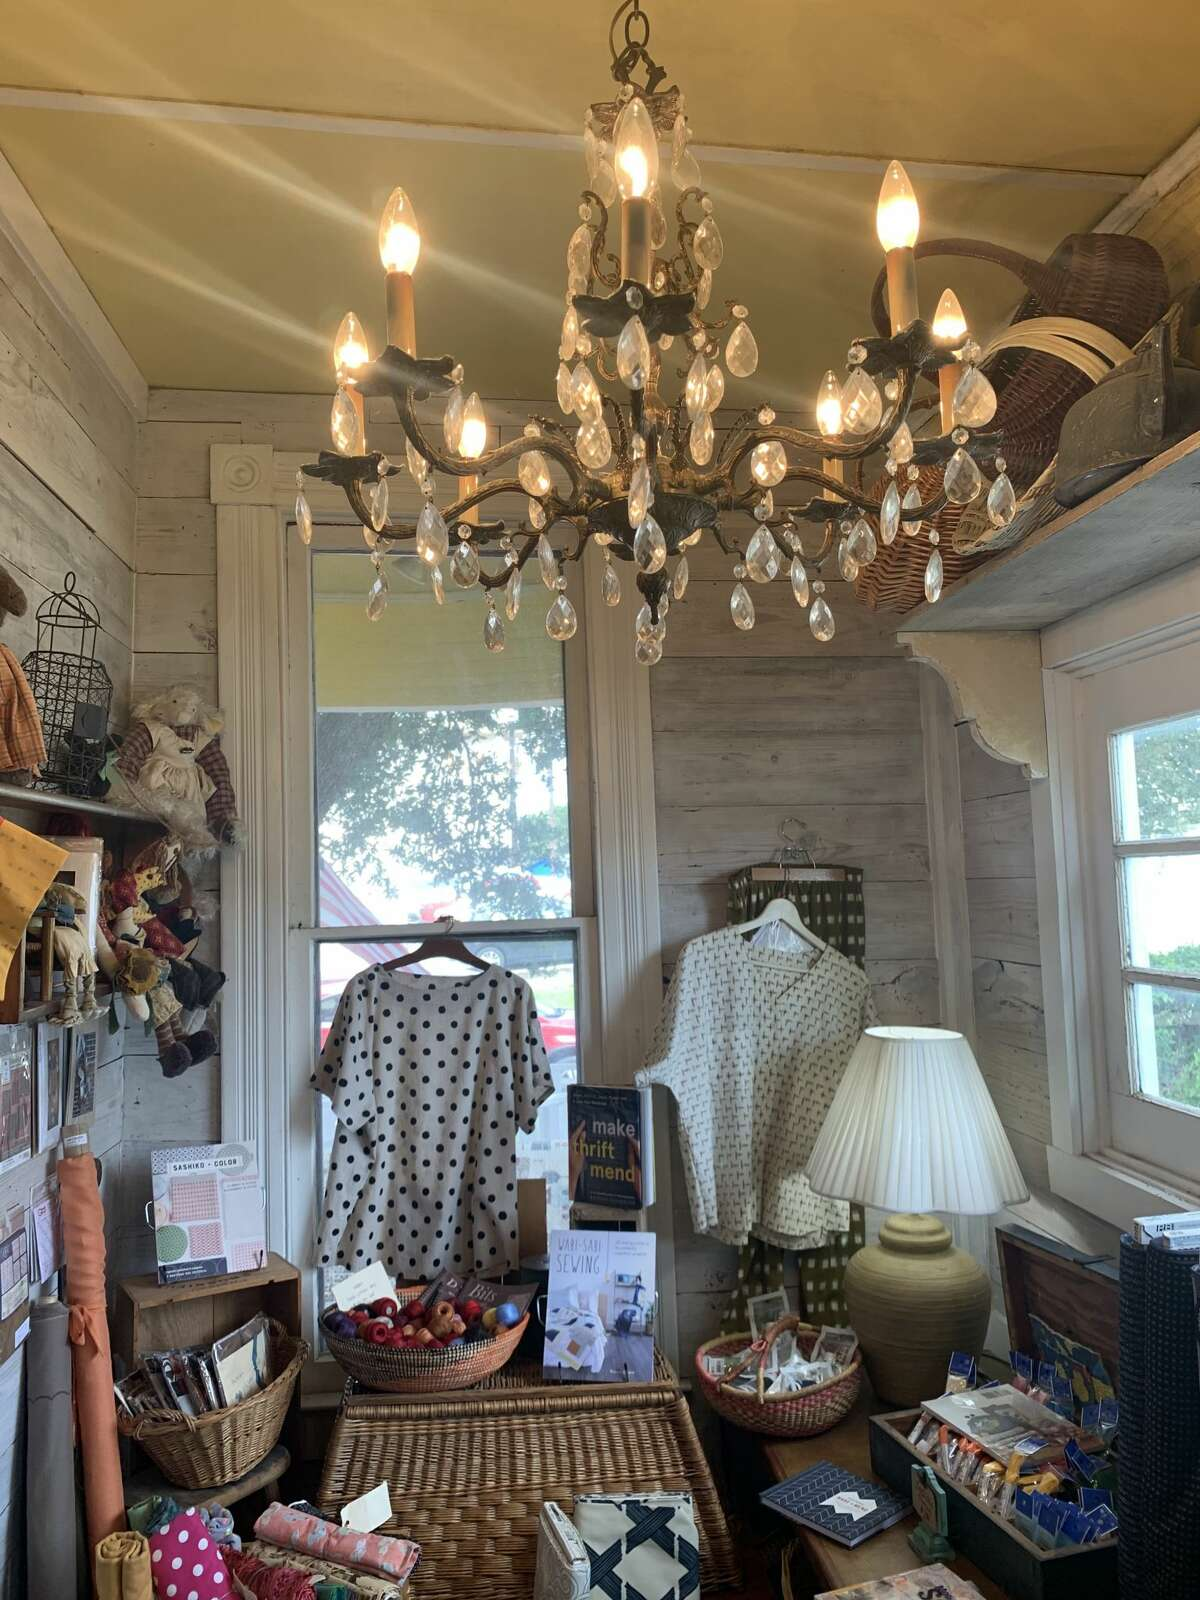 The store  is filled with antique pieces of lighting and furnishings  to lucifer  the lukewarm  feel.